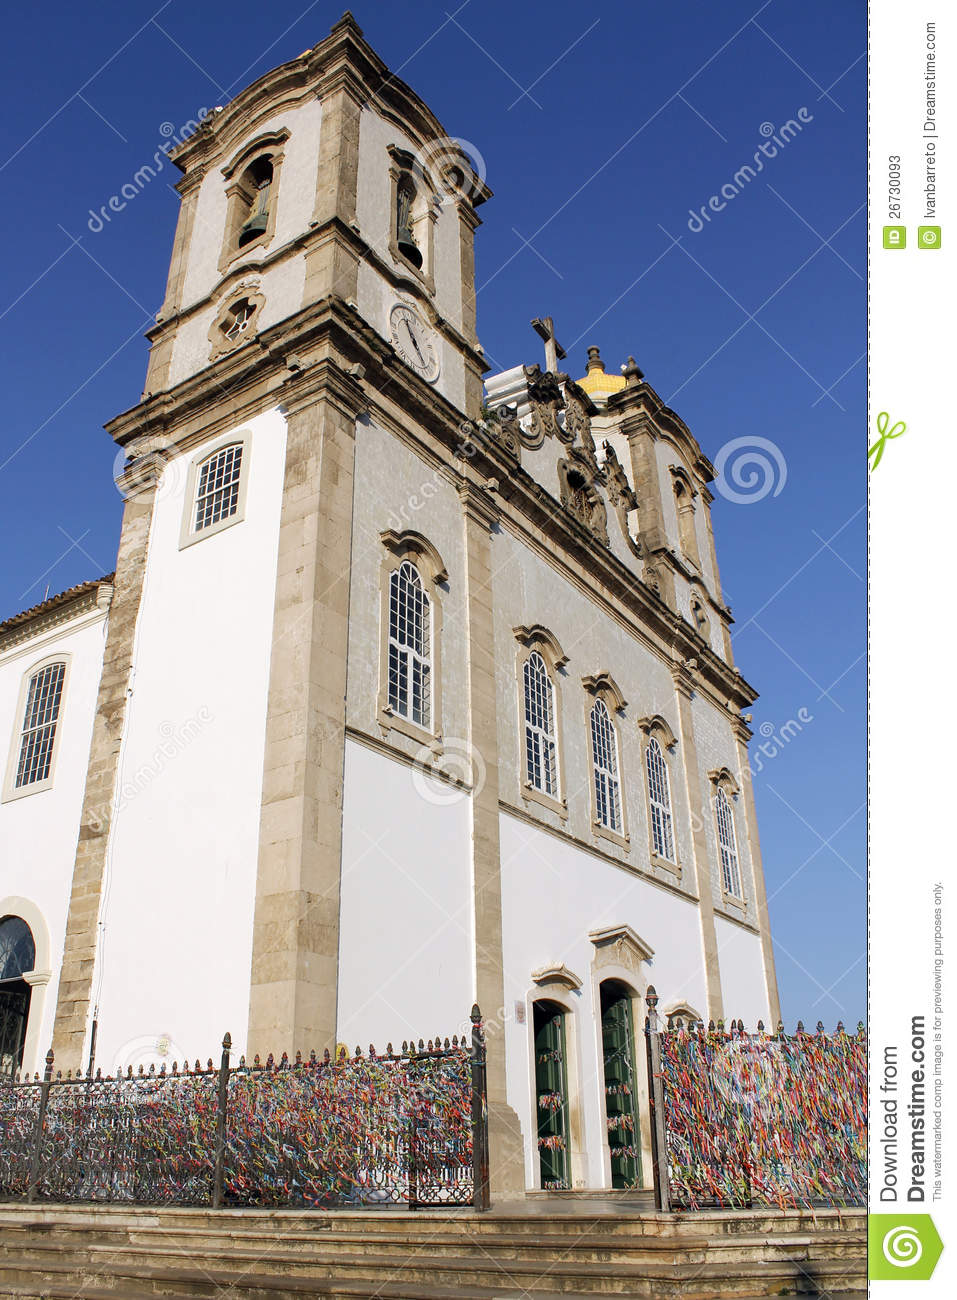 Bonfim Church in Salvador da Bahia, Brazil